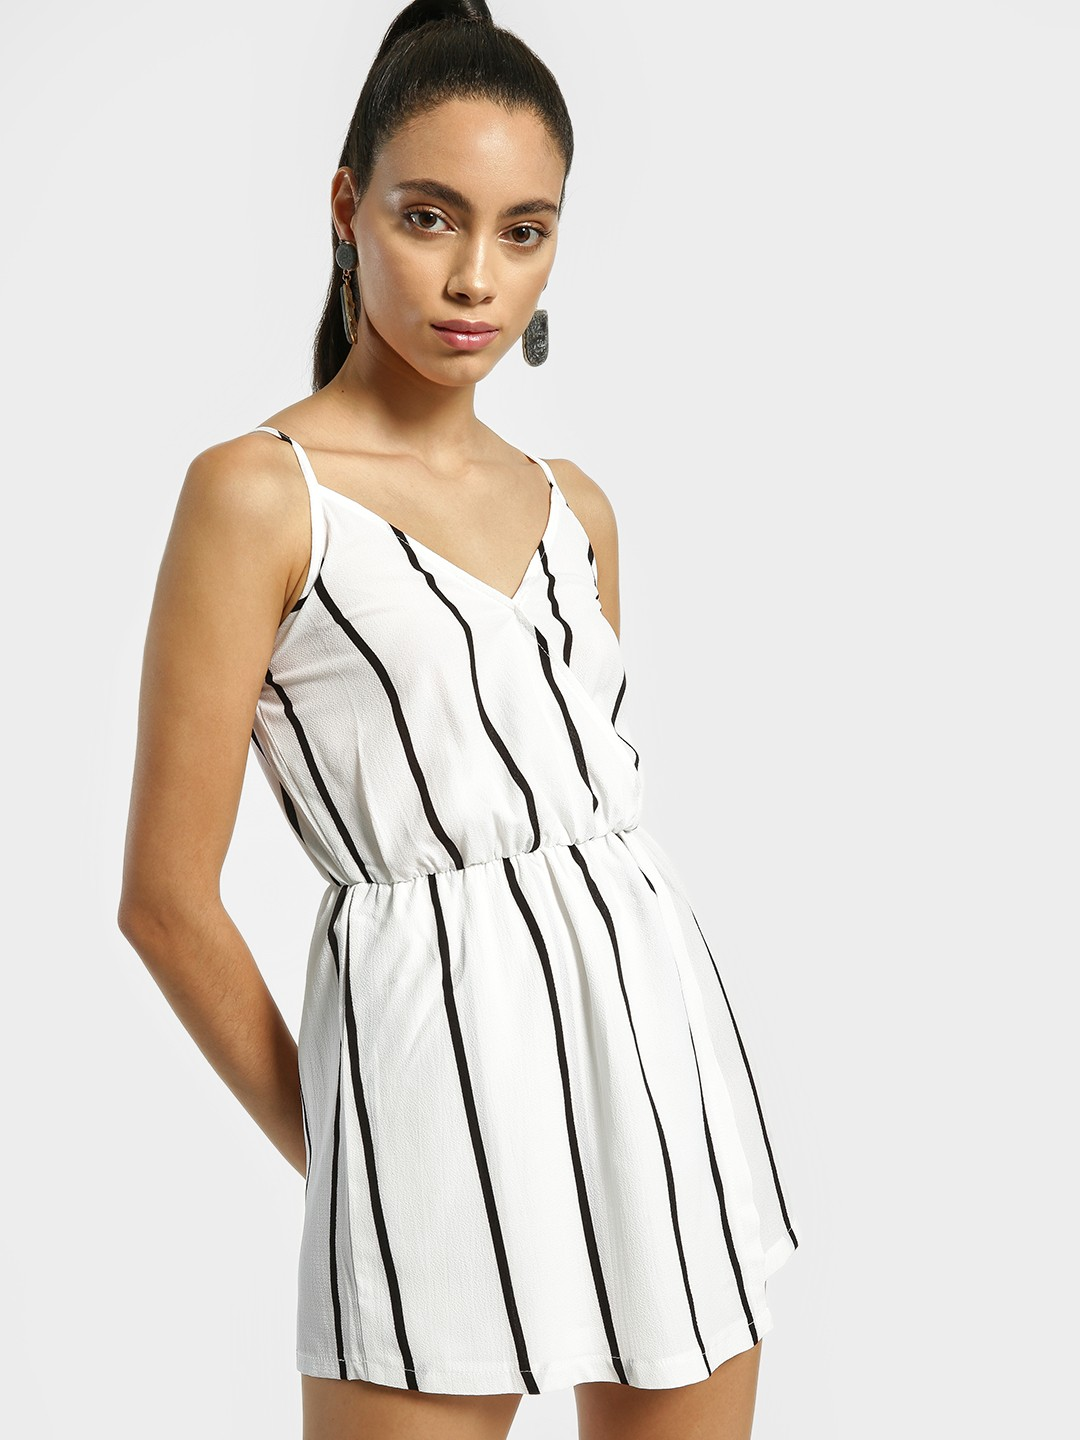 EmmaCloth Multi Vertical Stripe Strappy Playsuit 1